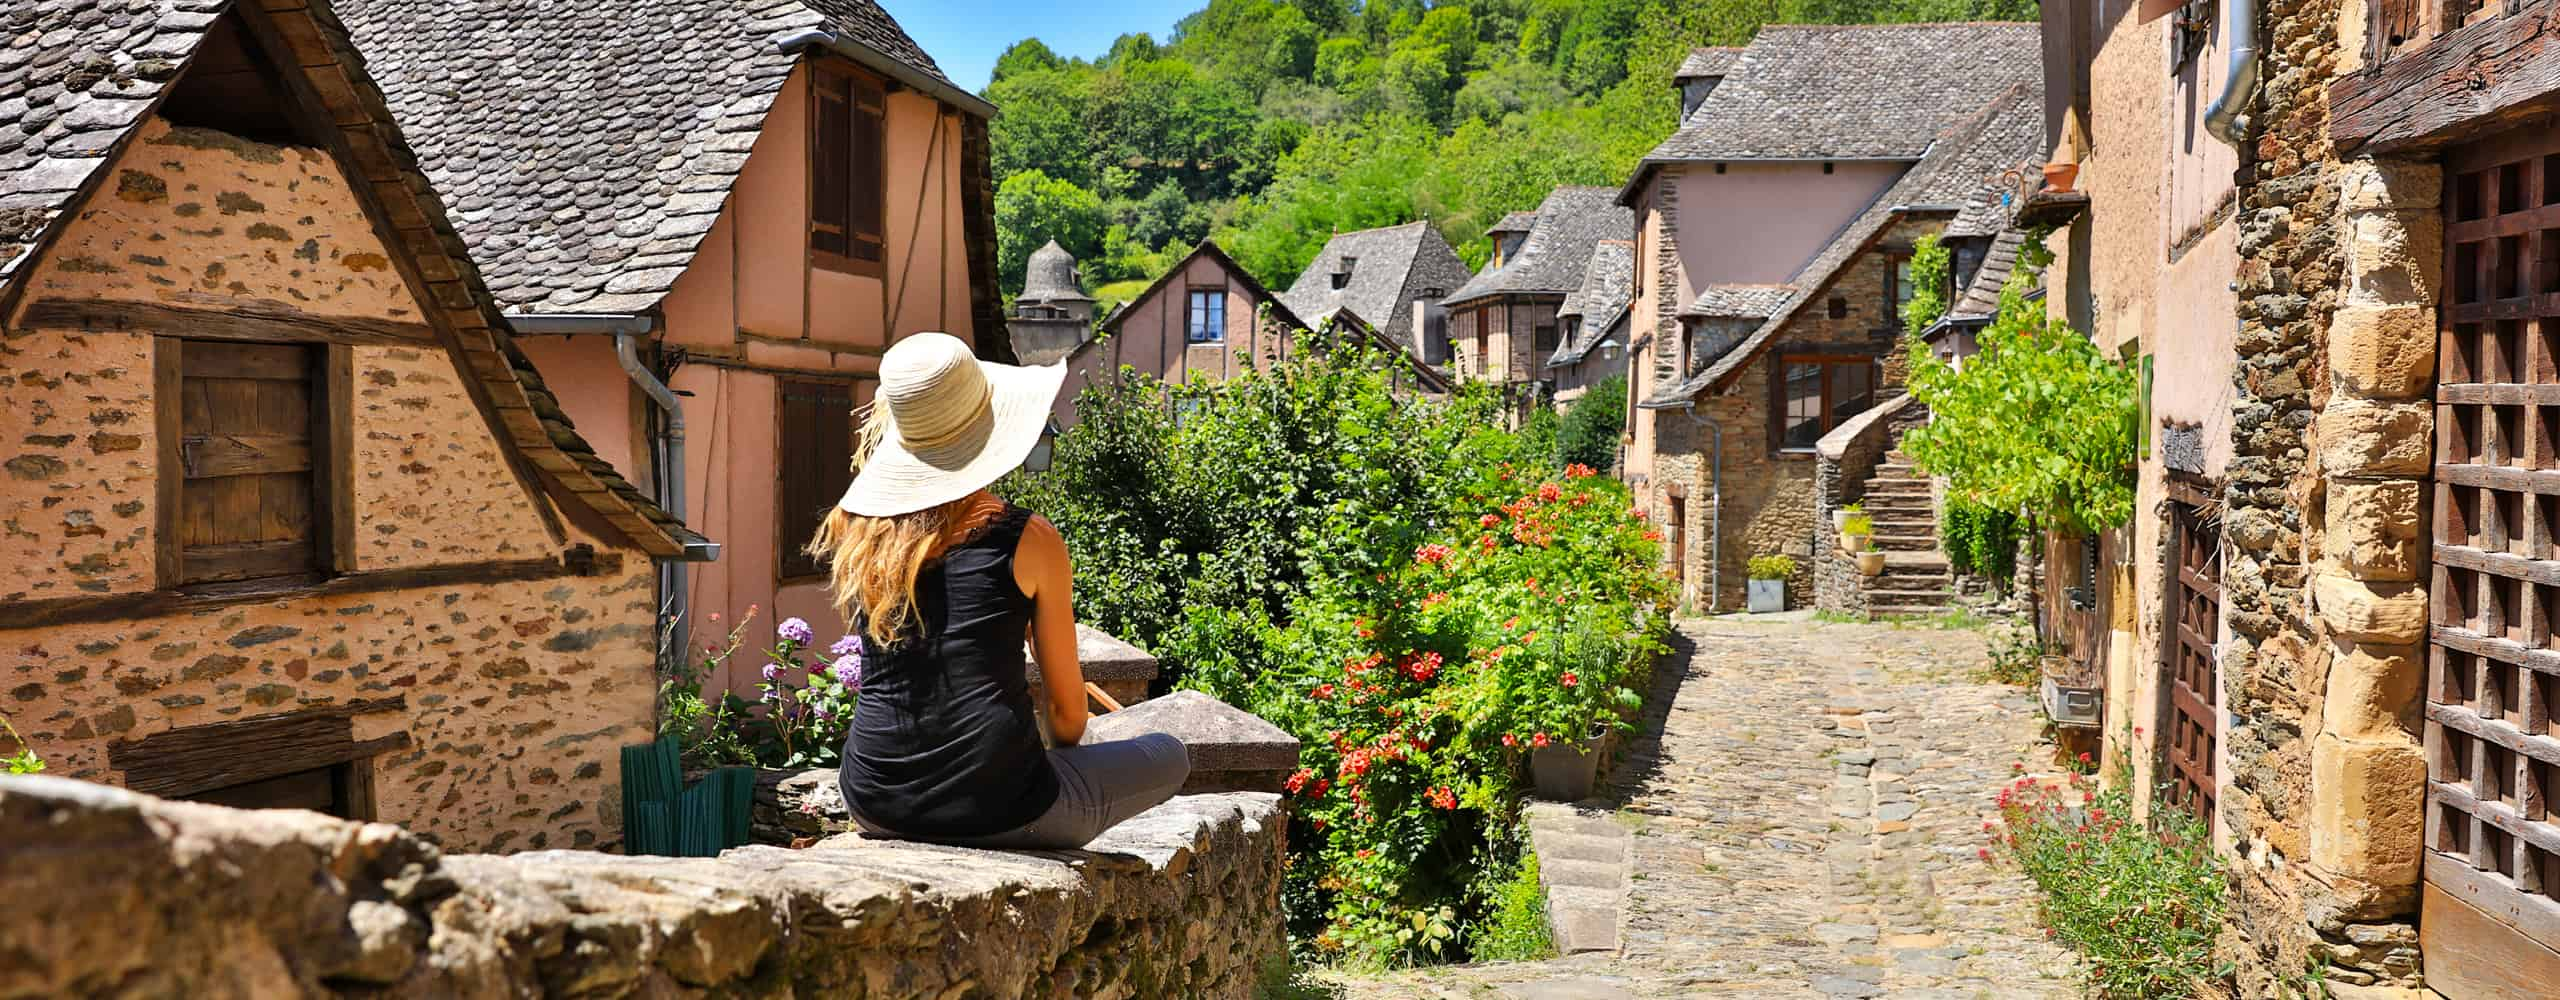 Village Of Conques, France